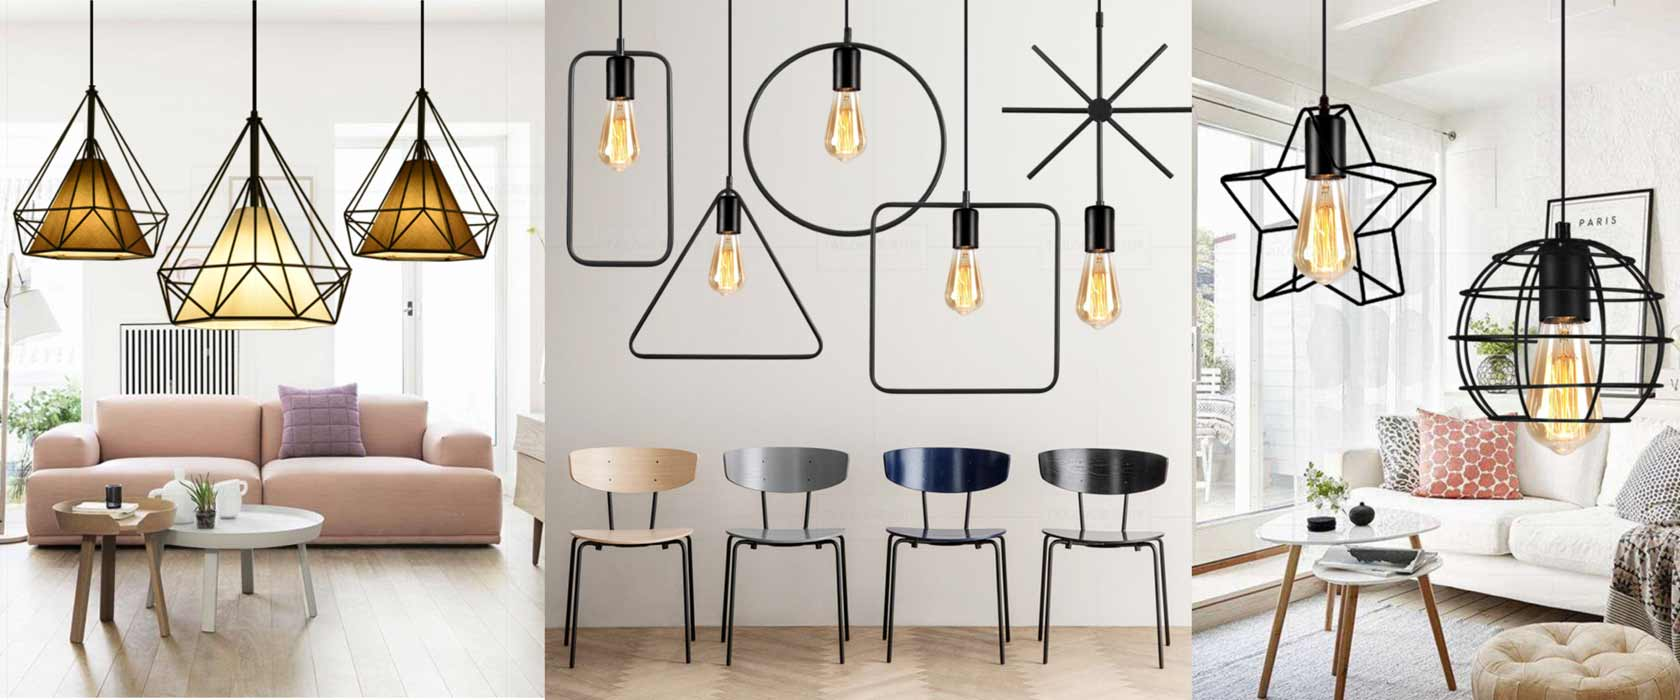 European simply pendant light E27 lampholder